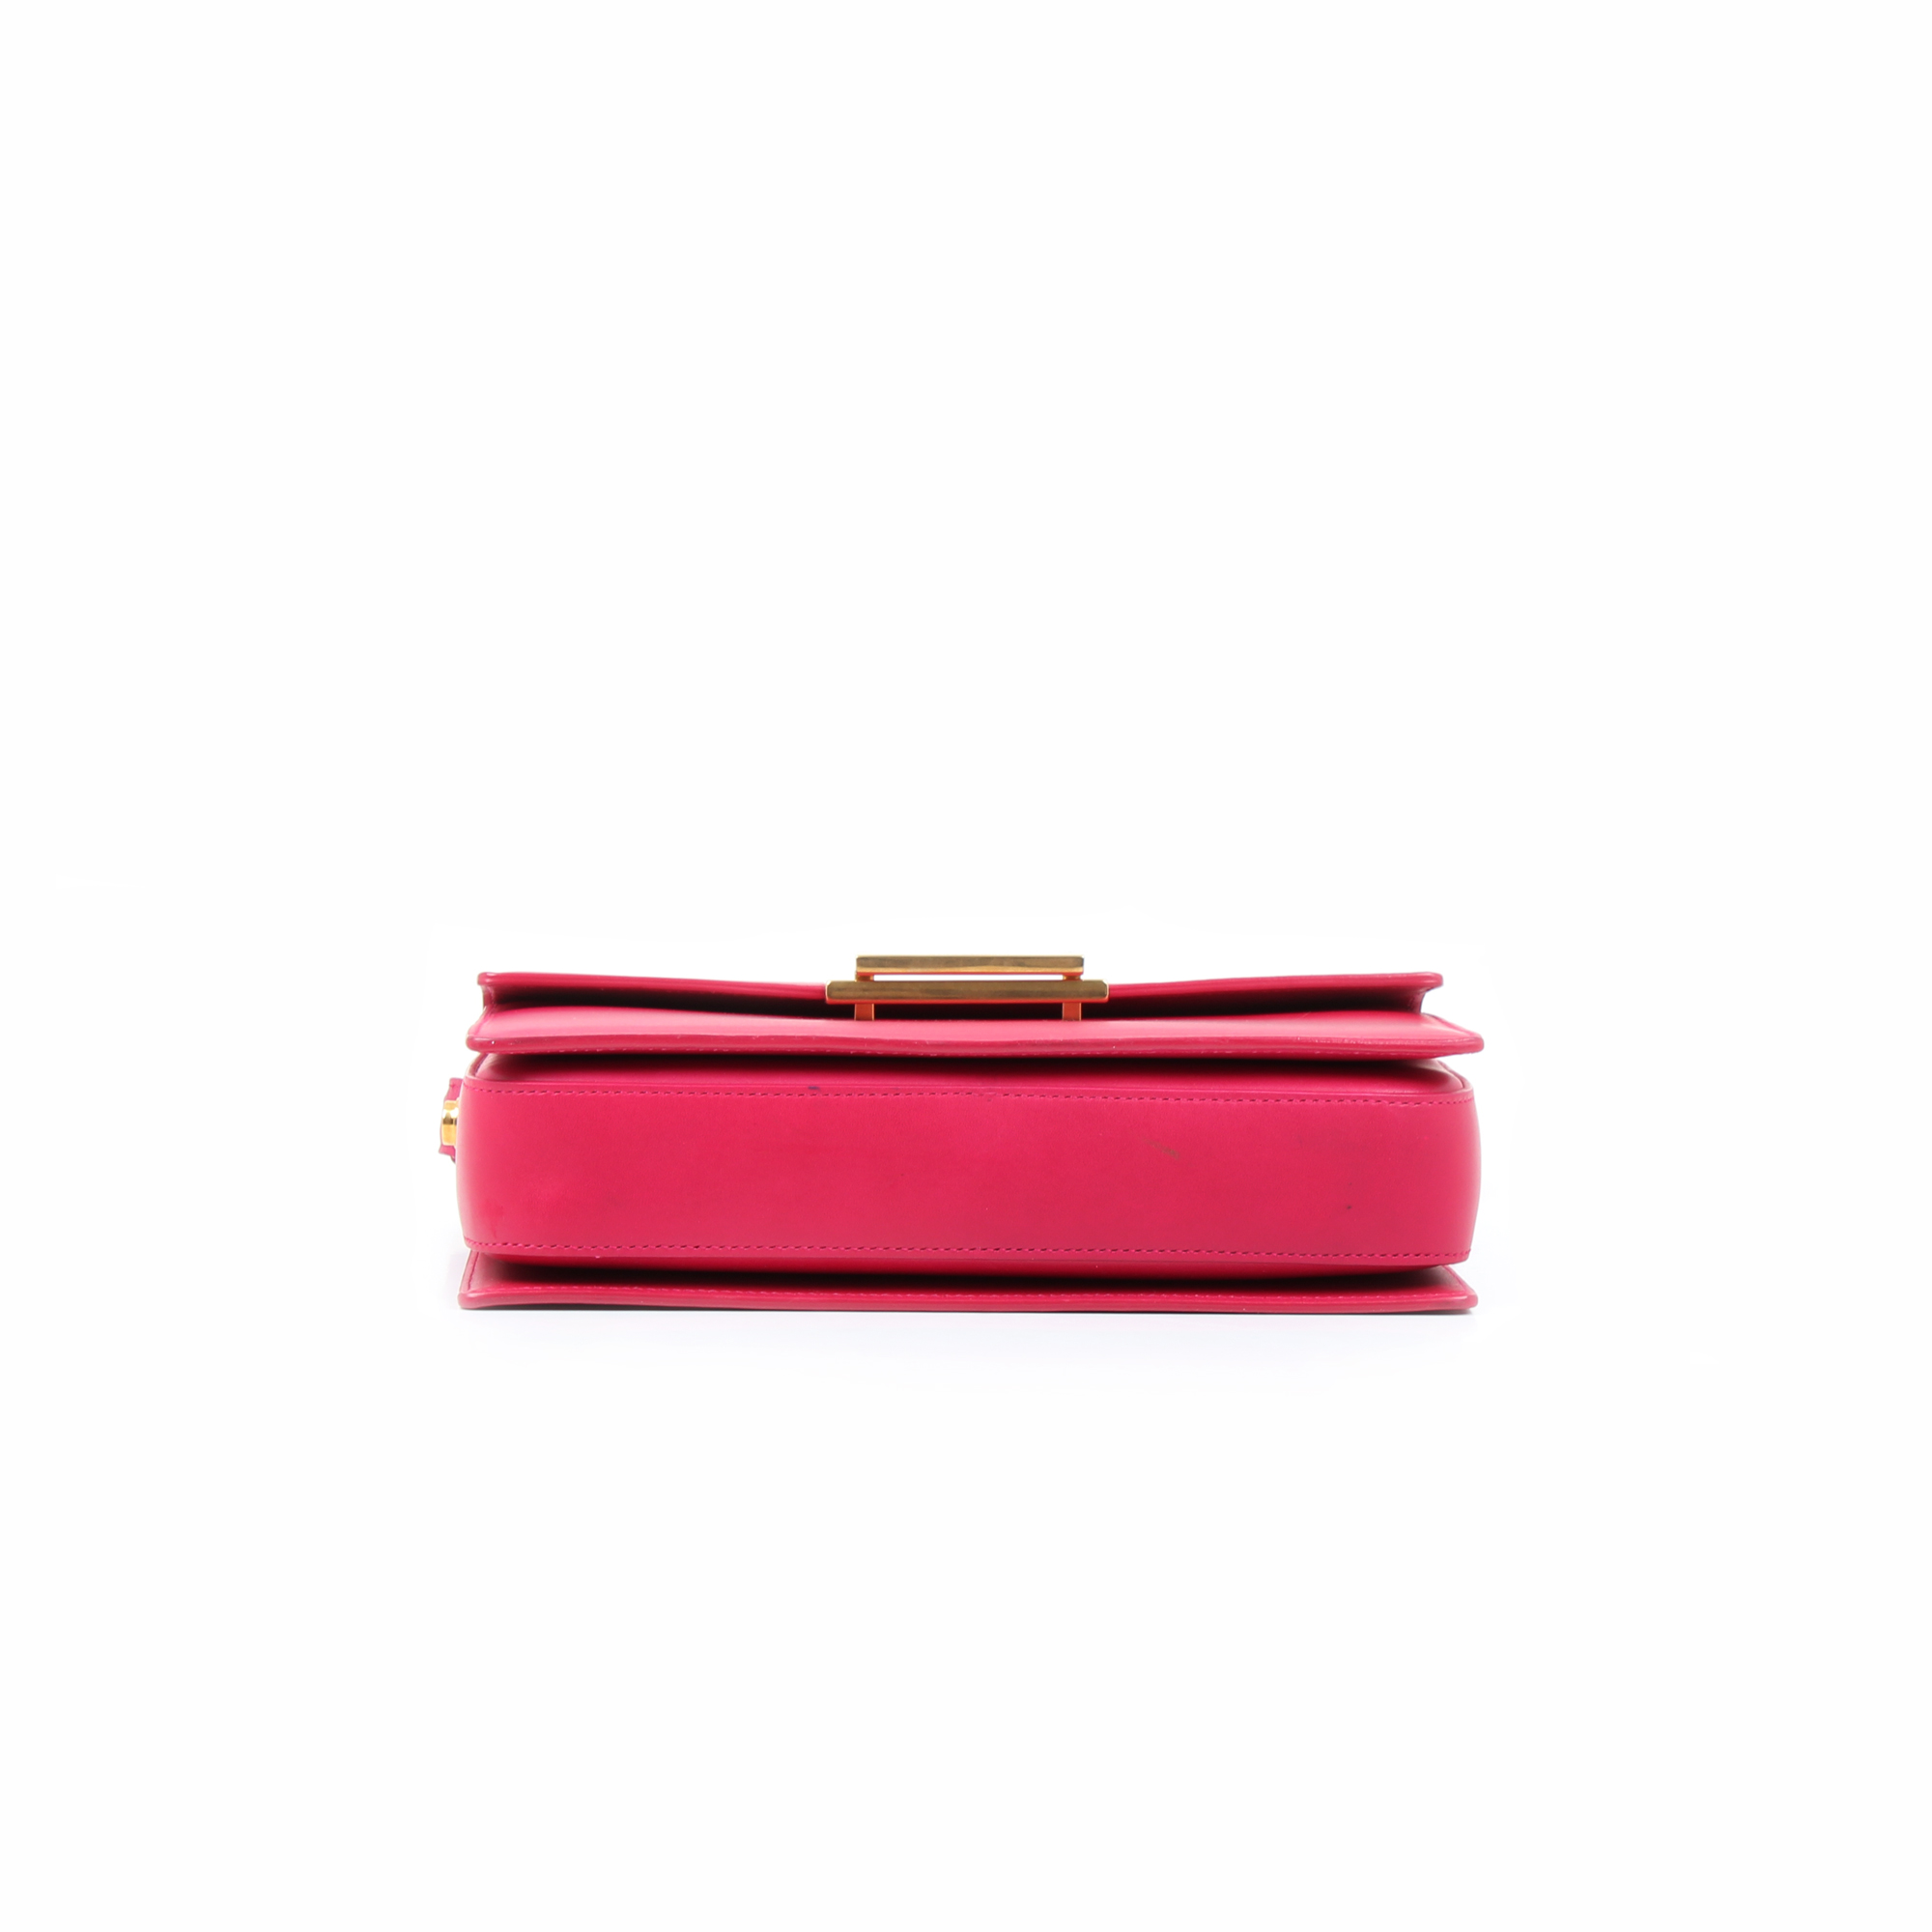 Base image of Yves Saint Laurent Lulu shoulder bag